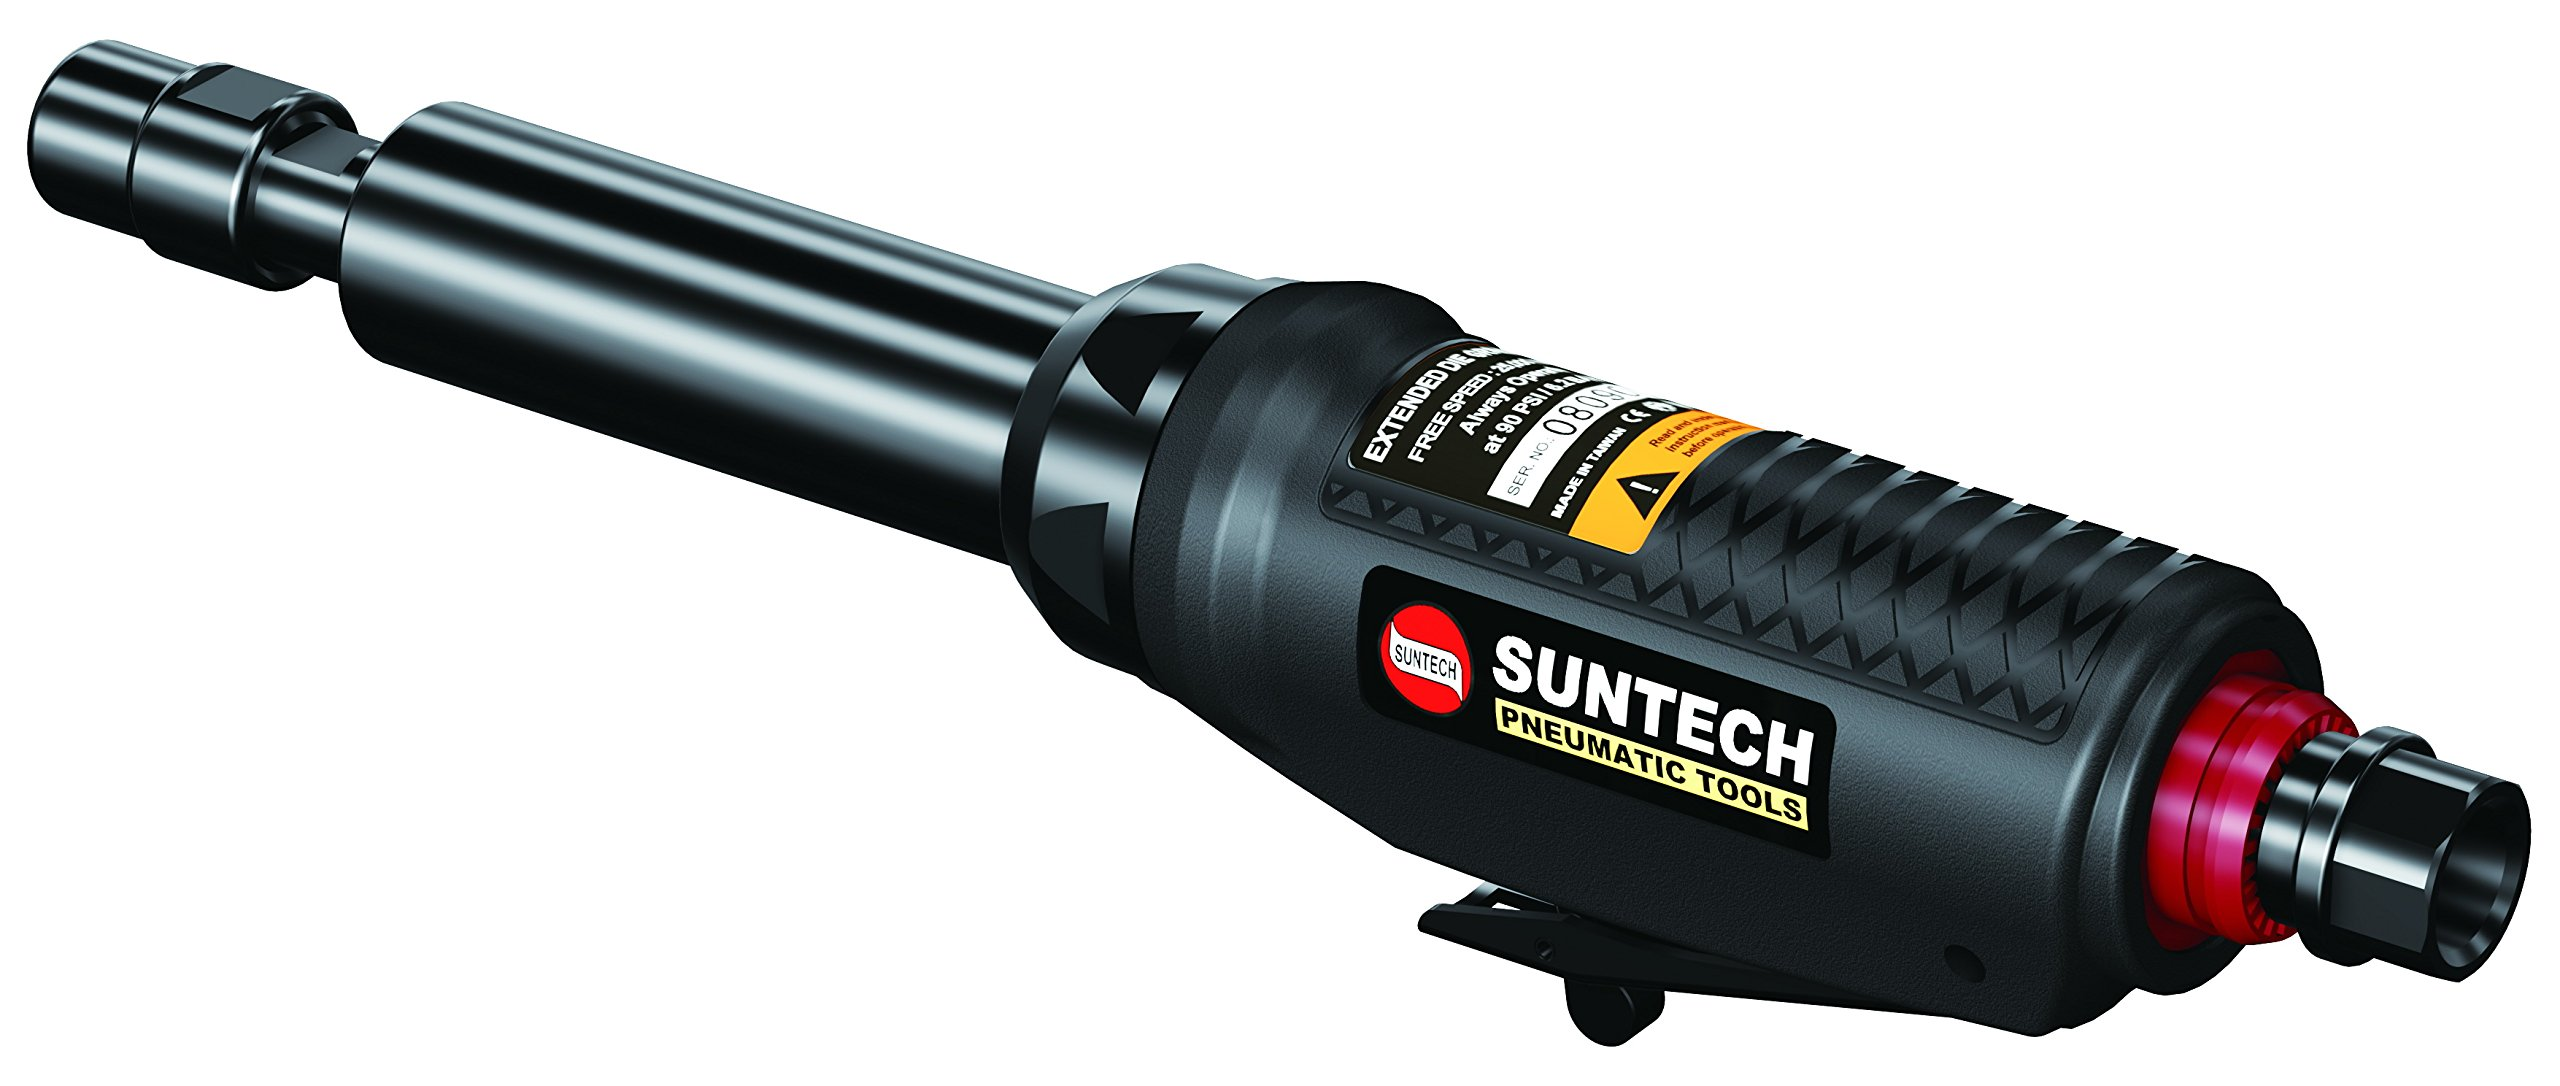 SUNTECH SM-5E-5300 Sunmatch Power Die Grinders, Black